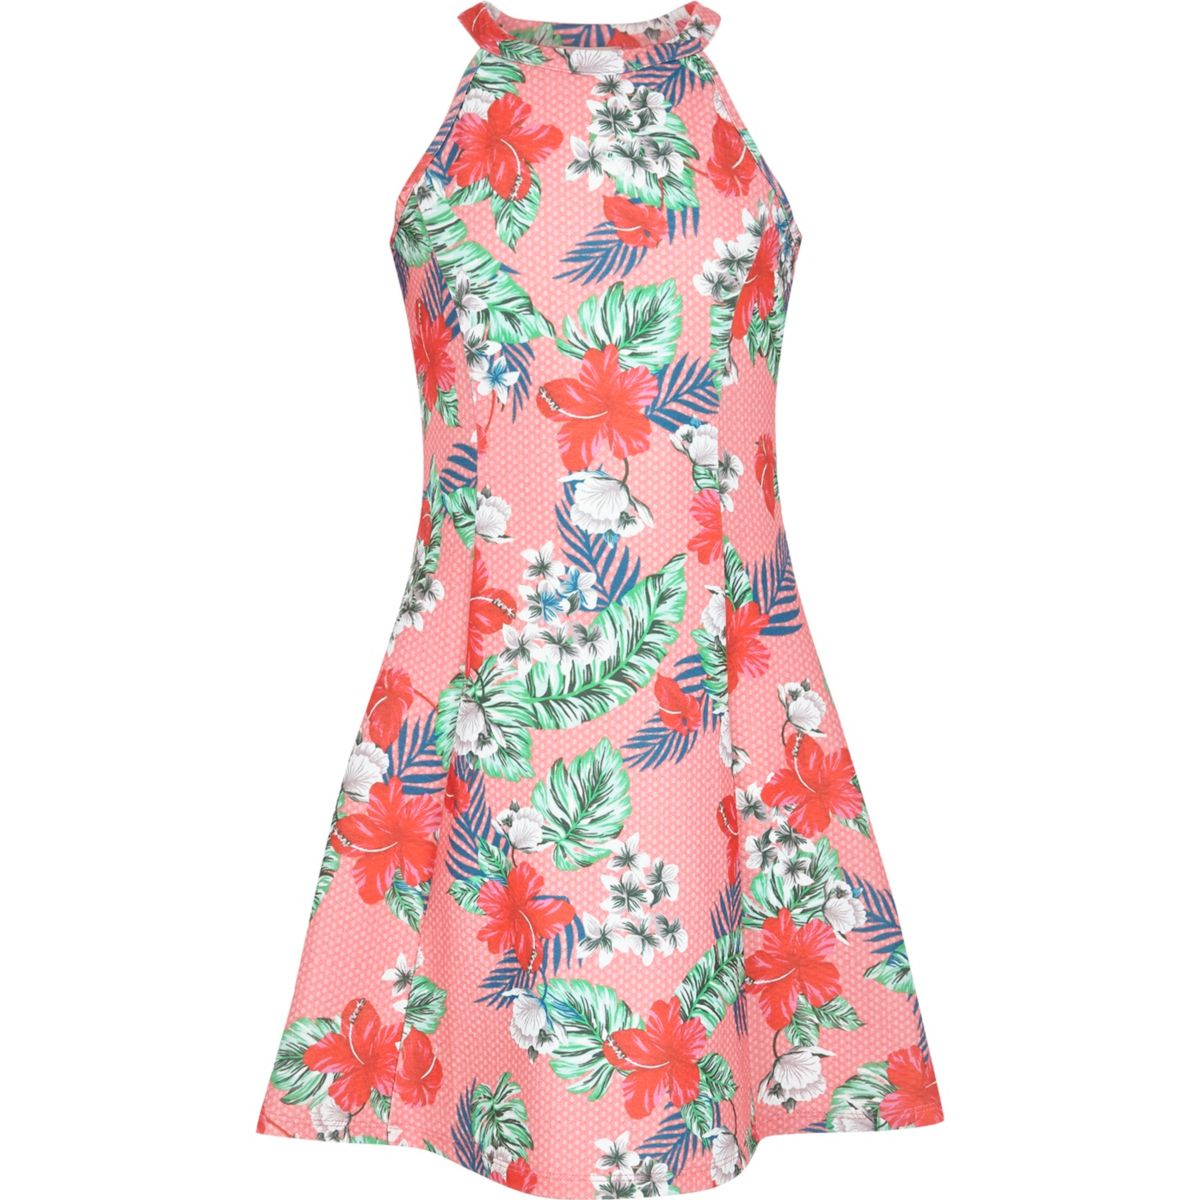 Girls pink tropical print fit and flare dress